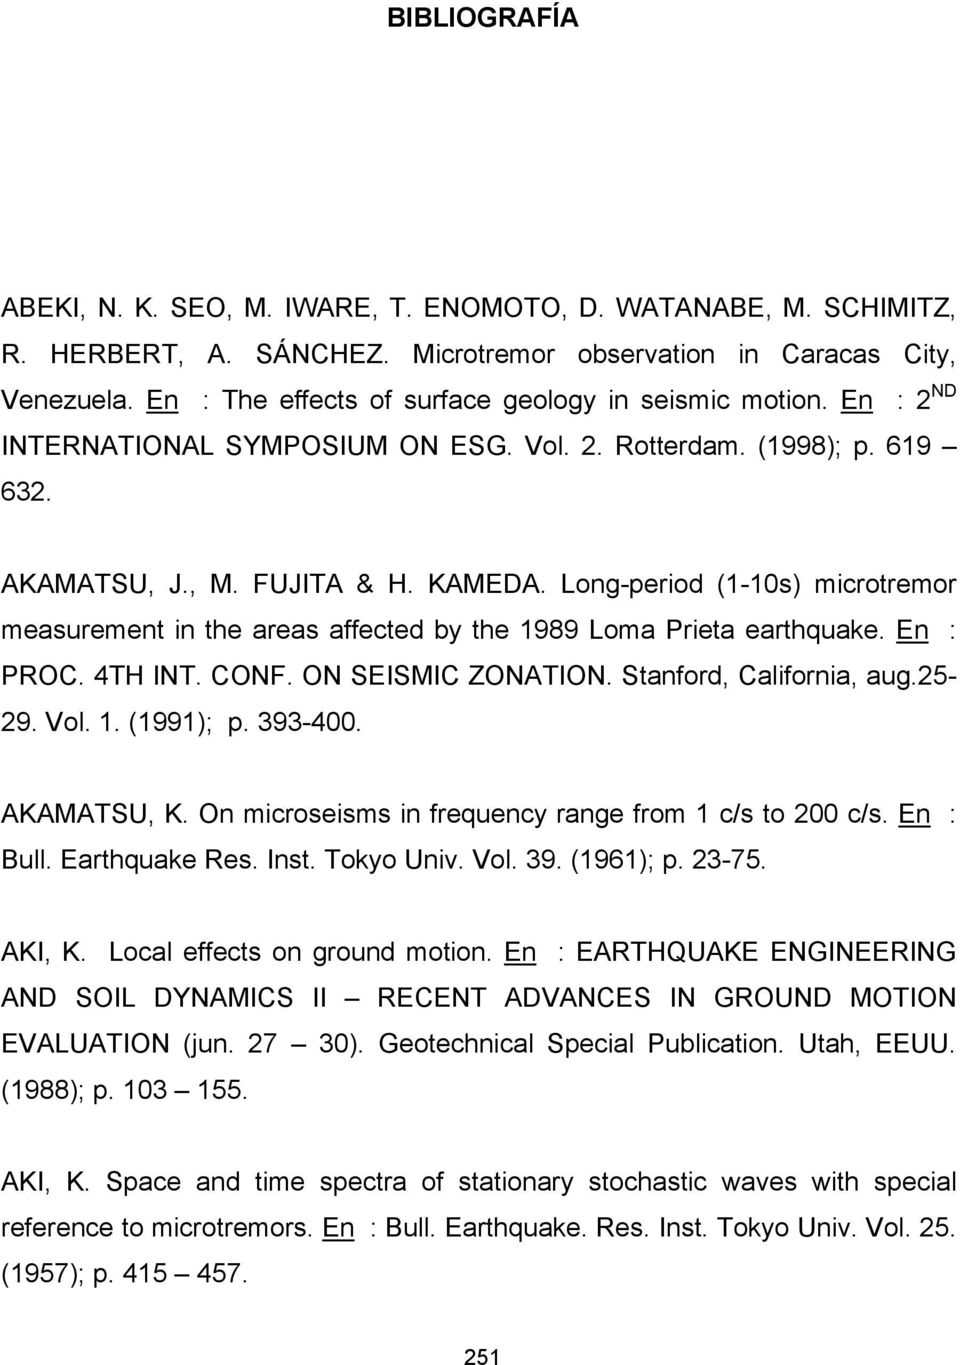 Long-period (1-10s) microtremor measurement in the areas affected by the 1989 Loma Prieta earthquake. En : PROC. 4TH INT. CONF. ON SEISMIC ZONATION. Stanford, California, aug.25-29. Vol. 1. (1991); p.